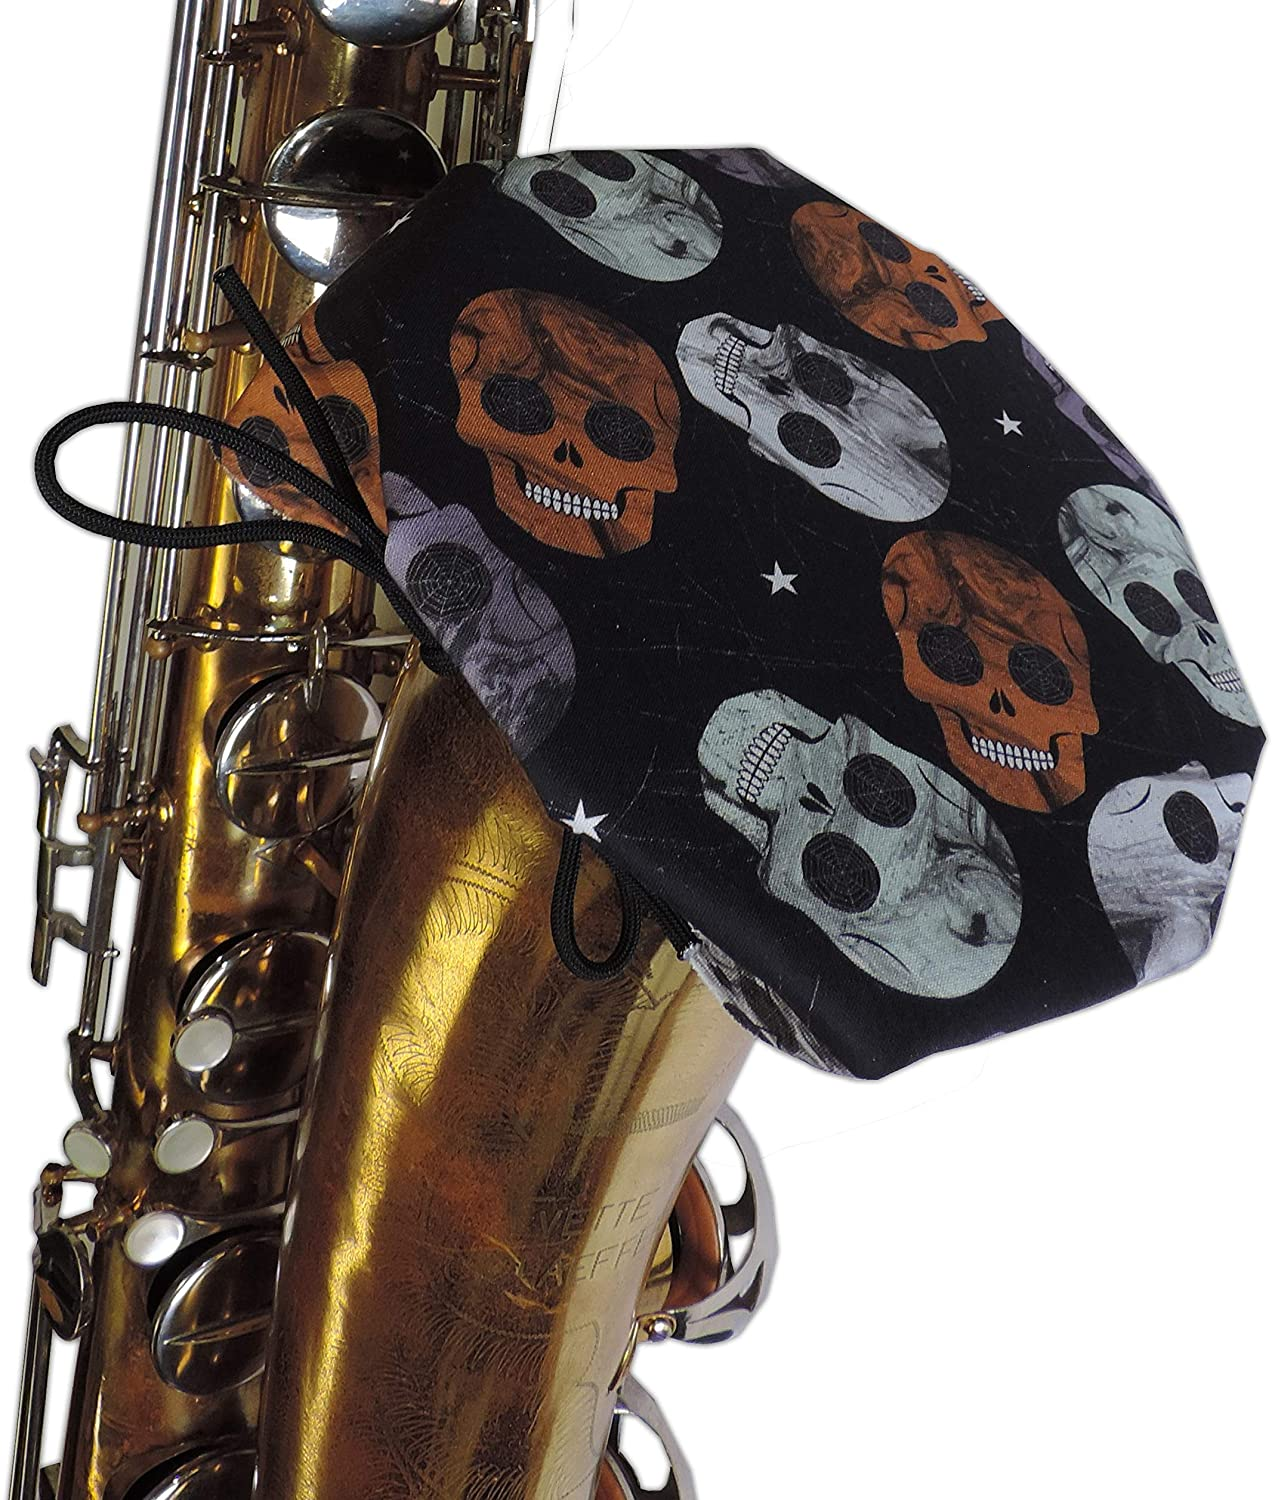 IBAM Bari Sax Bell Cover (fits Tenor Sax/Trombone) w/MERV-13 filter - Quick to attach and remove. Trusted by school districts and musicians! Manufactured by musicians for musicians - Skulls Design